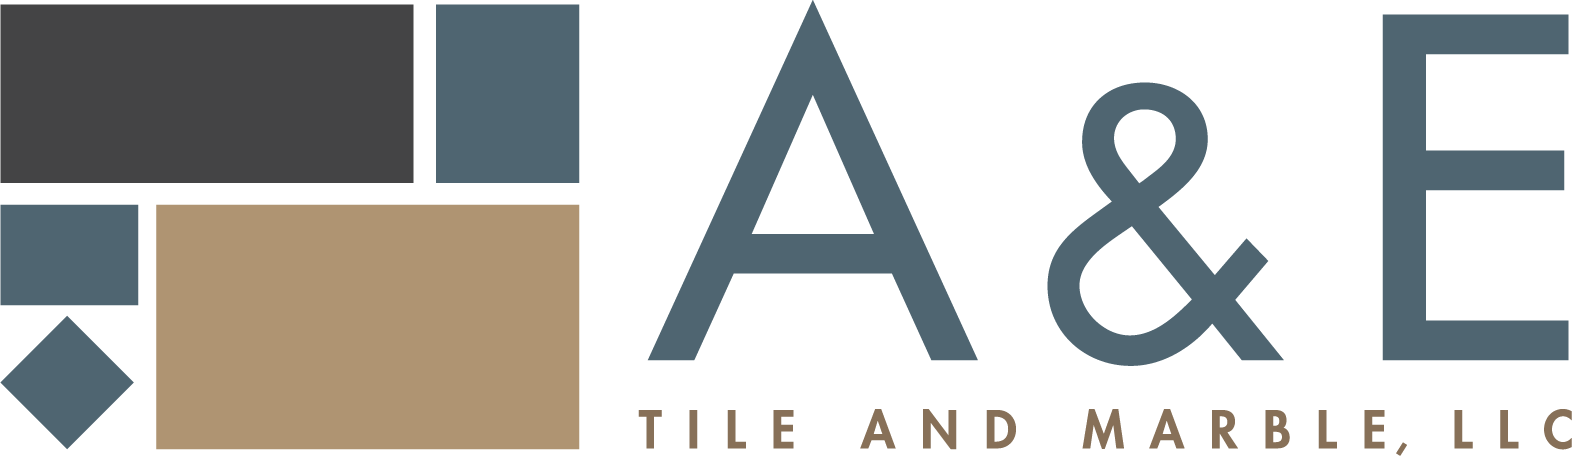 A&E Tile and Marble LLC